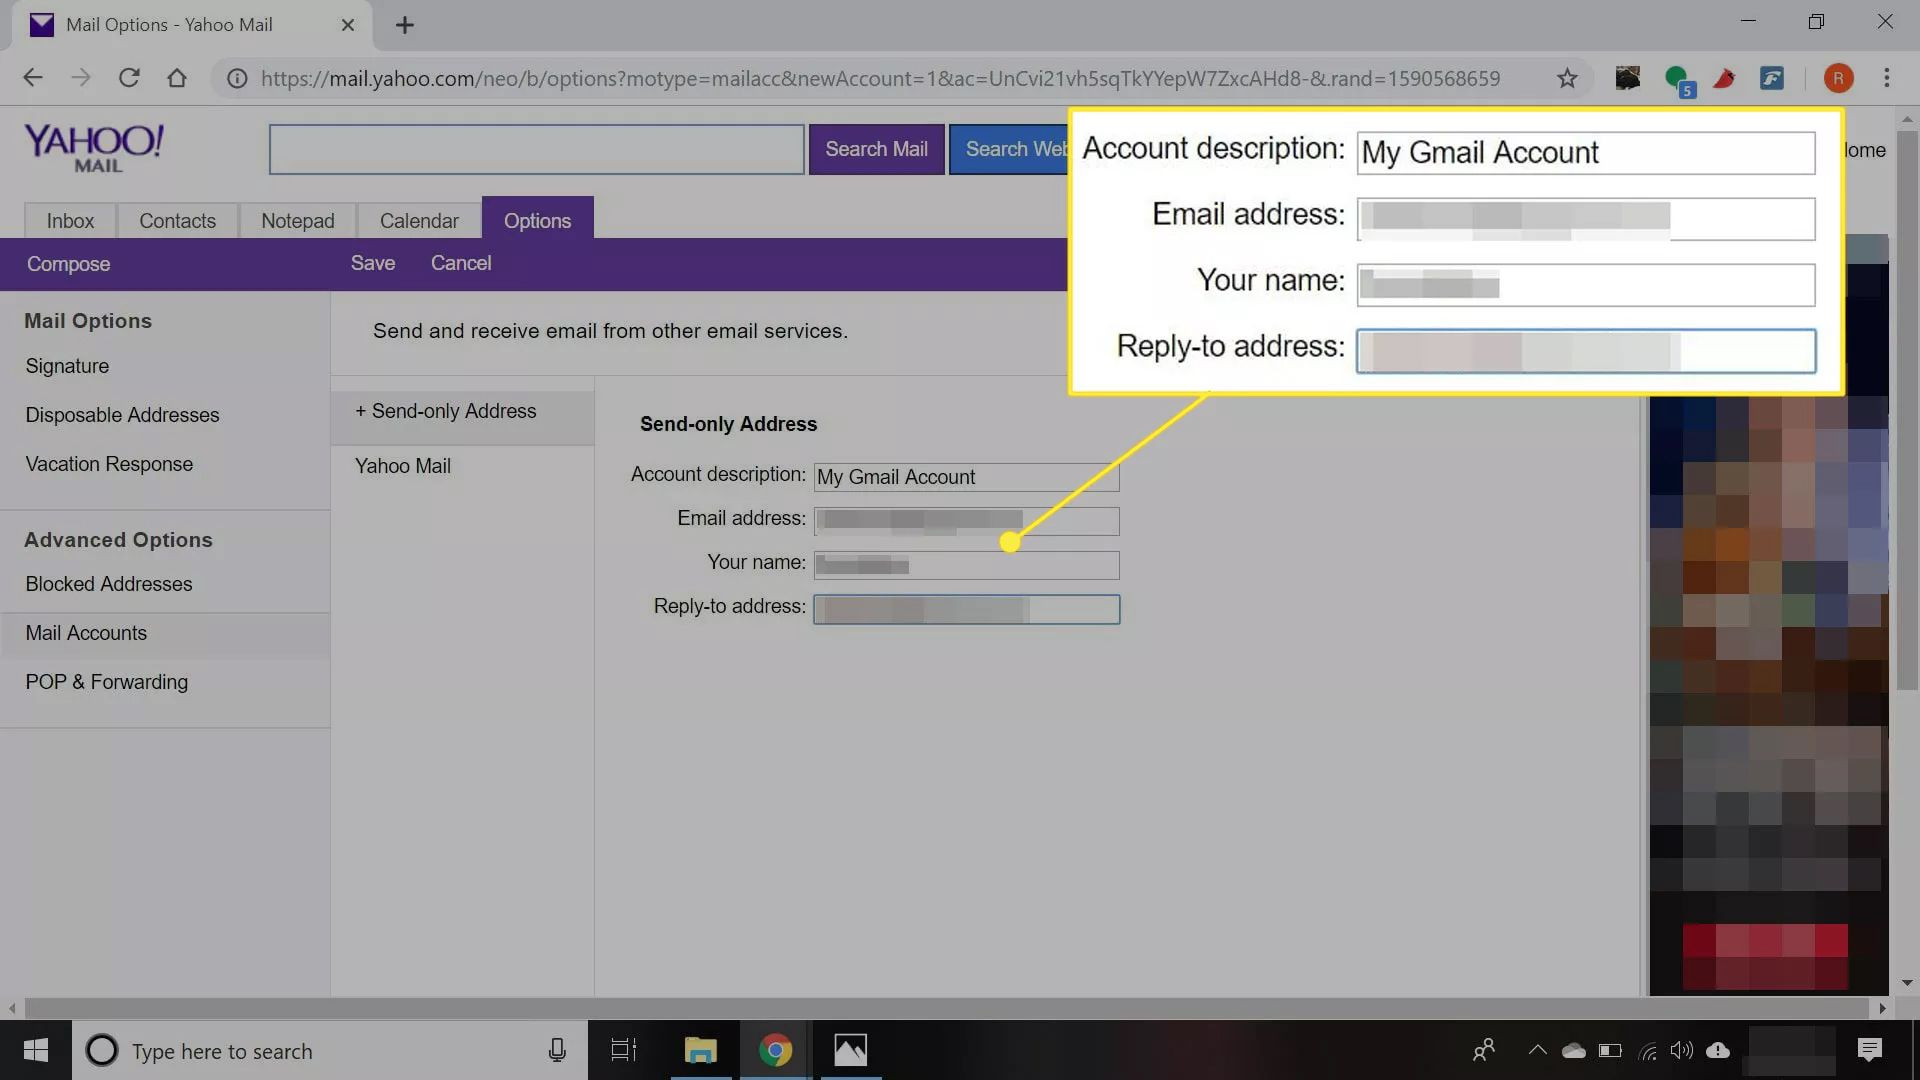 Yahoo Mail settings showing an alternate account